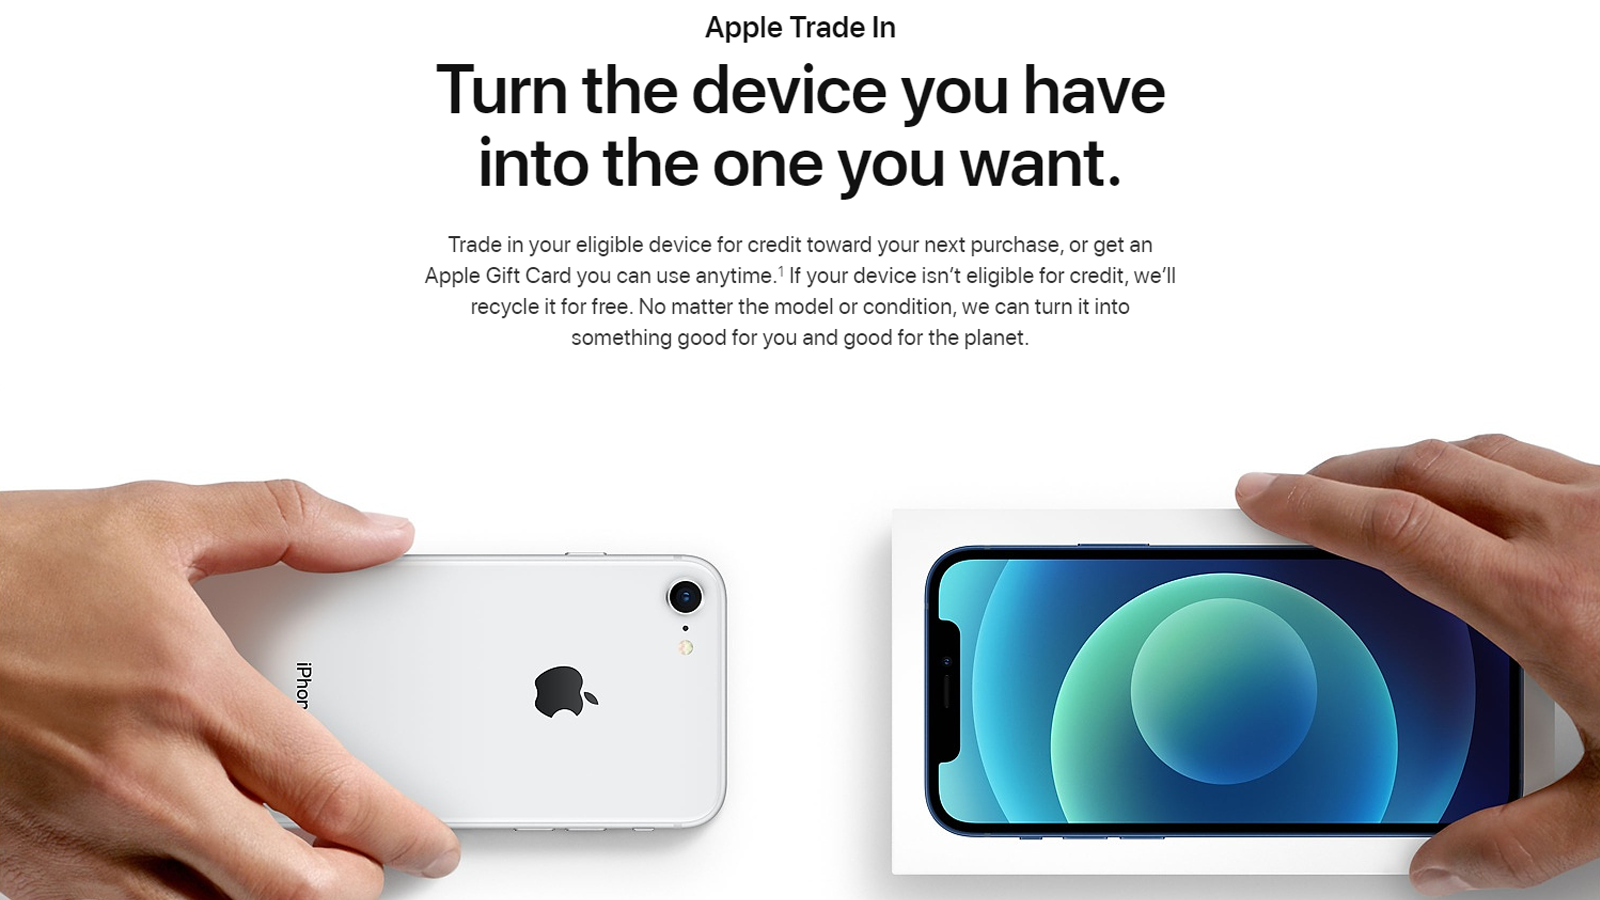 Apple Trade In program picturing two phones being held